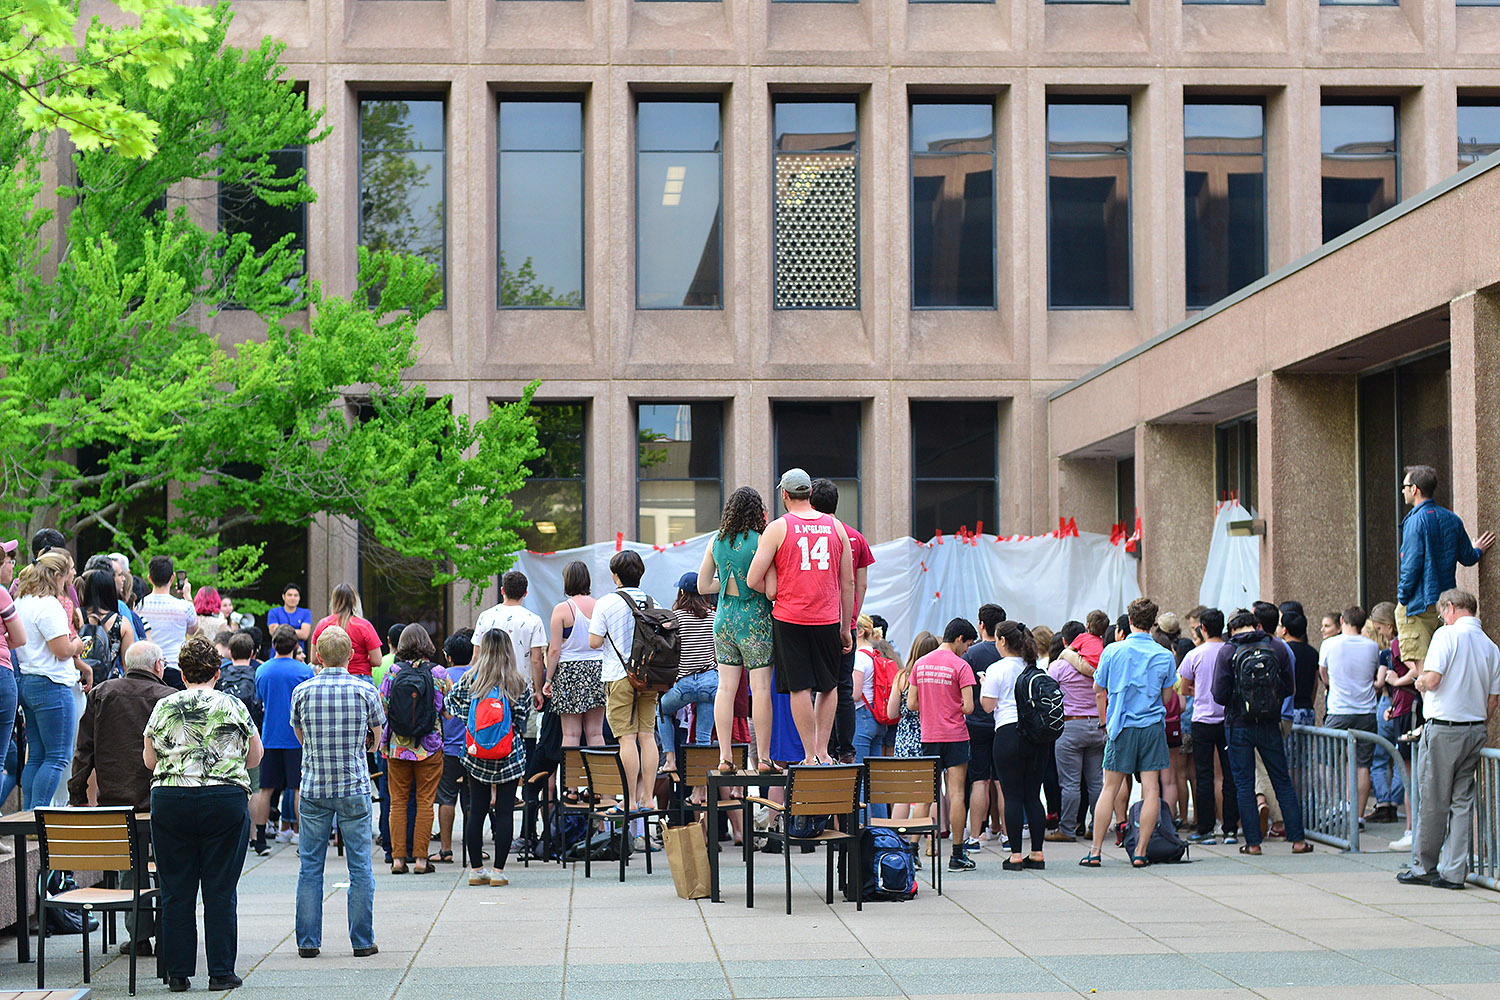 On May 9, crowds gathered outside Exley Science Center for the third annual Big Drop.